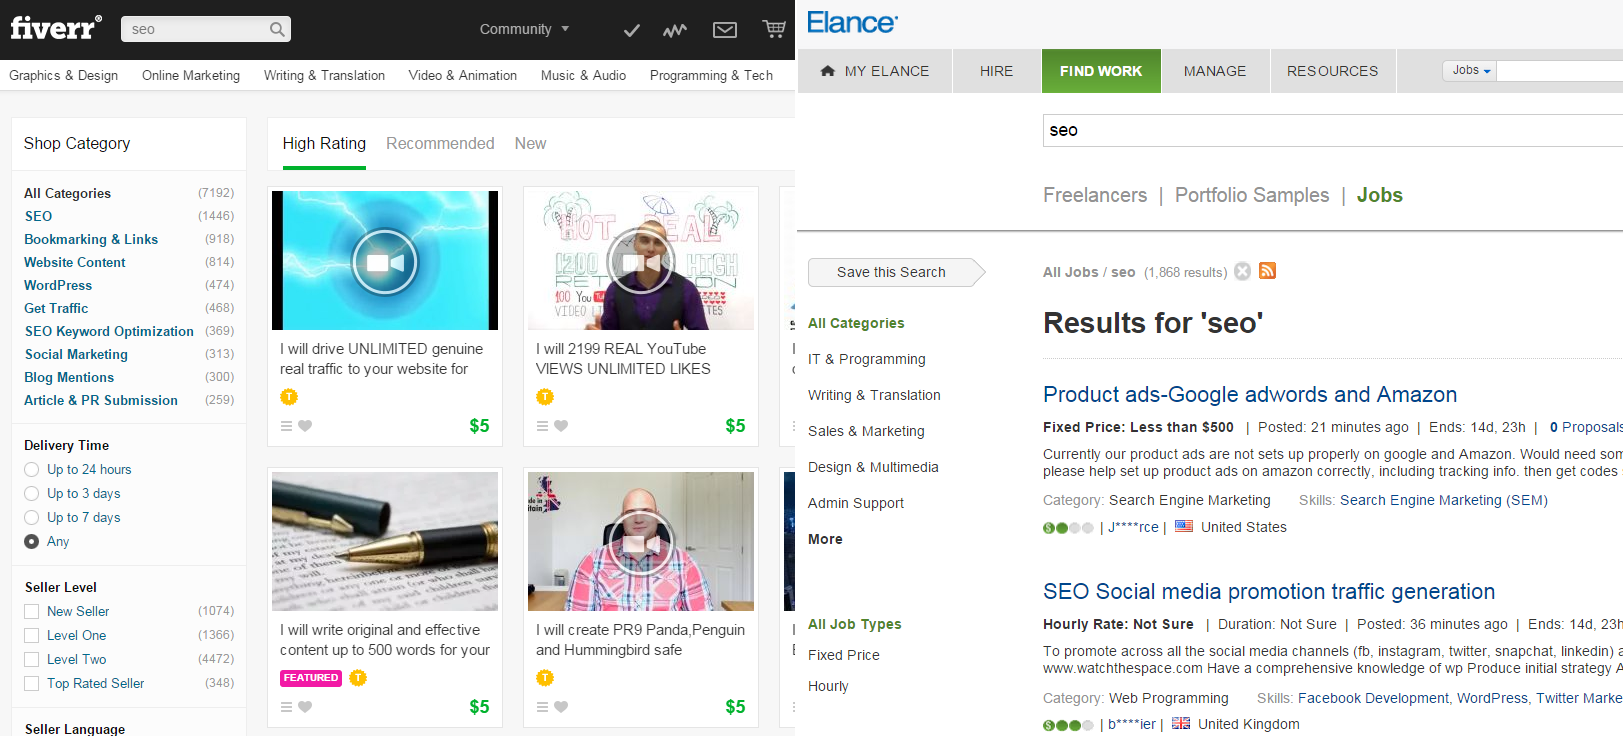 SEO Jobs on Fiverr and Elance